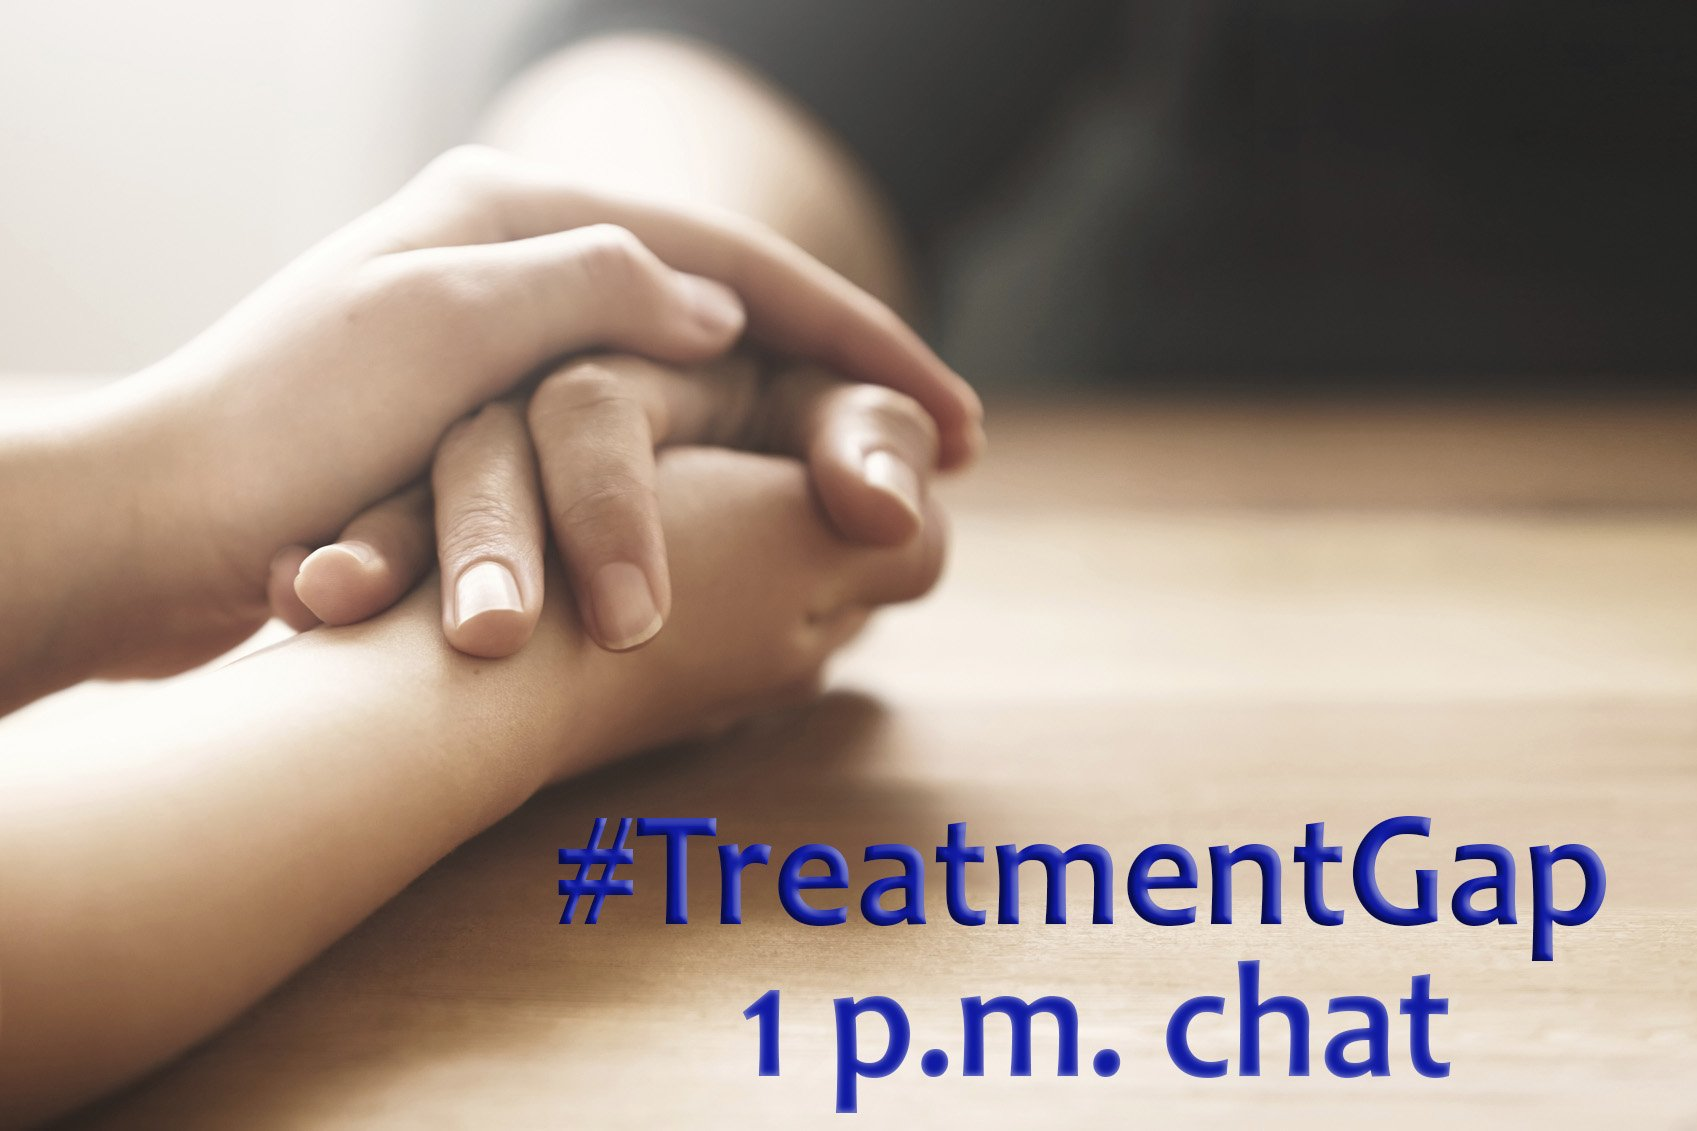 Only 1 in 10 people with alcohol problems get help - how can we close the #TreatmentGap? Join the convo with @ASAMorg & others in 1 hour https://t.co/2IKMG3mXto